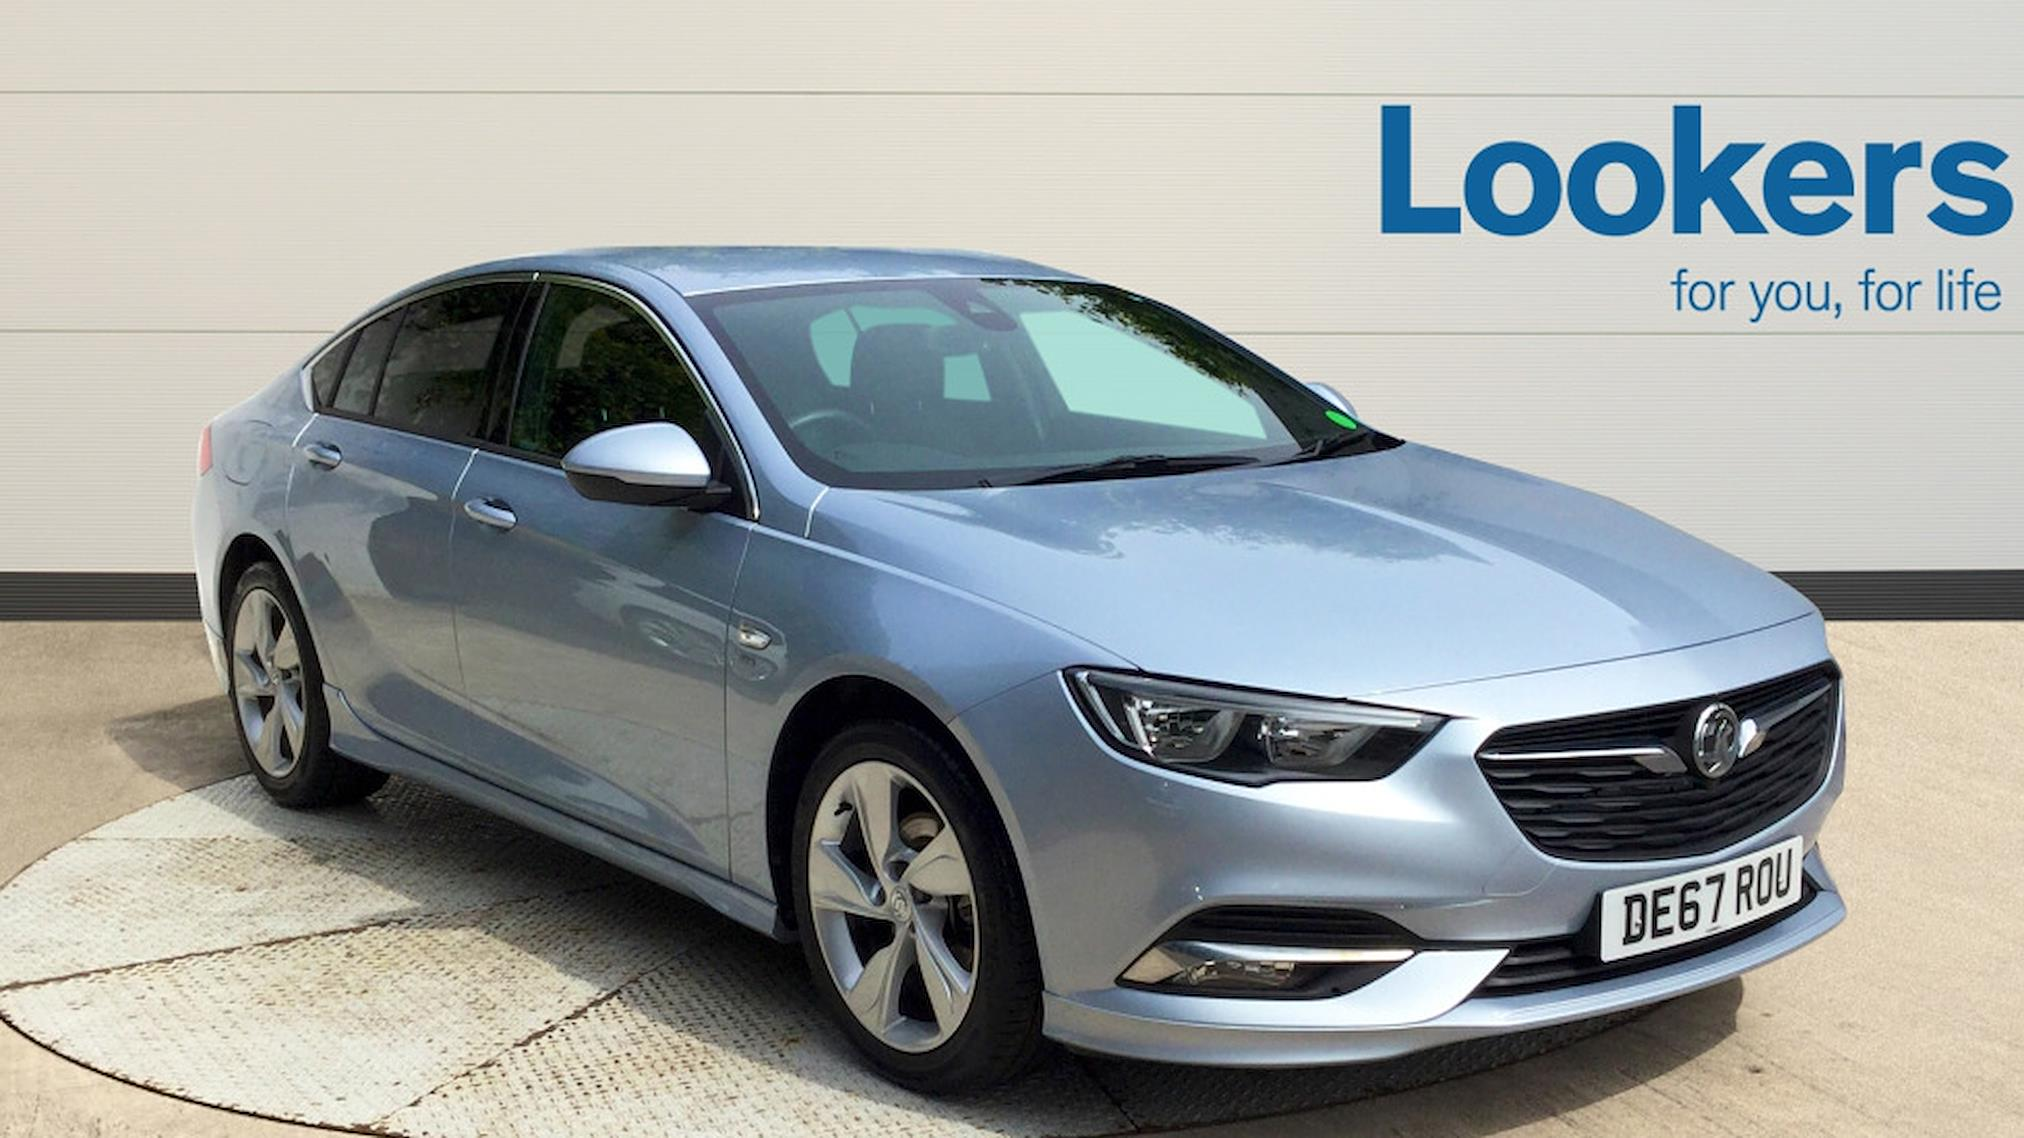 Used INSIGNIA VAUXHALL 1 5T Sri Vx-Line Nav 5Dr 2018 | Lookers